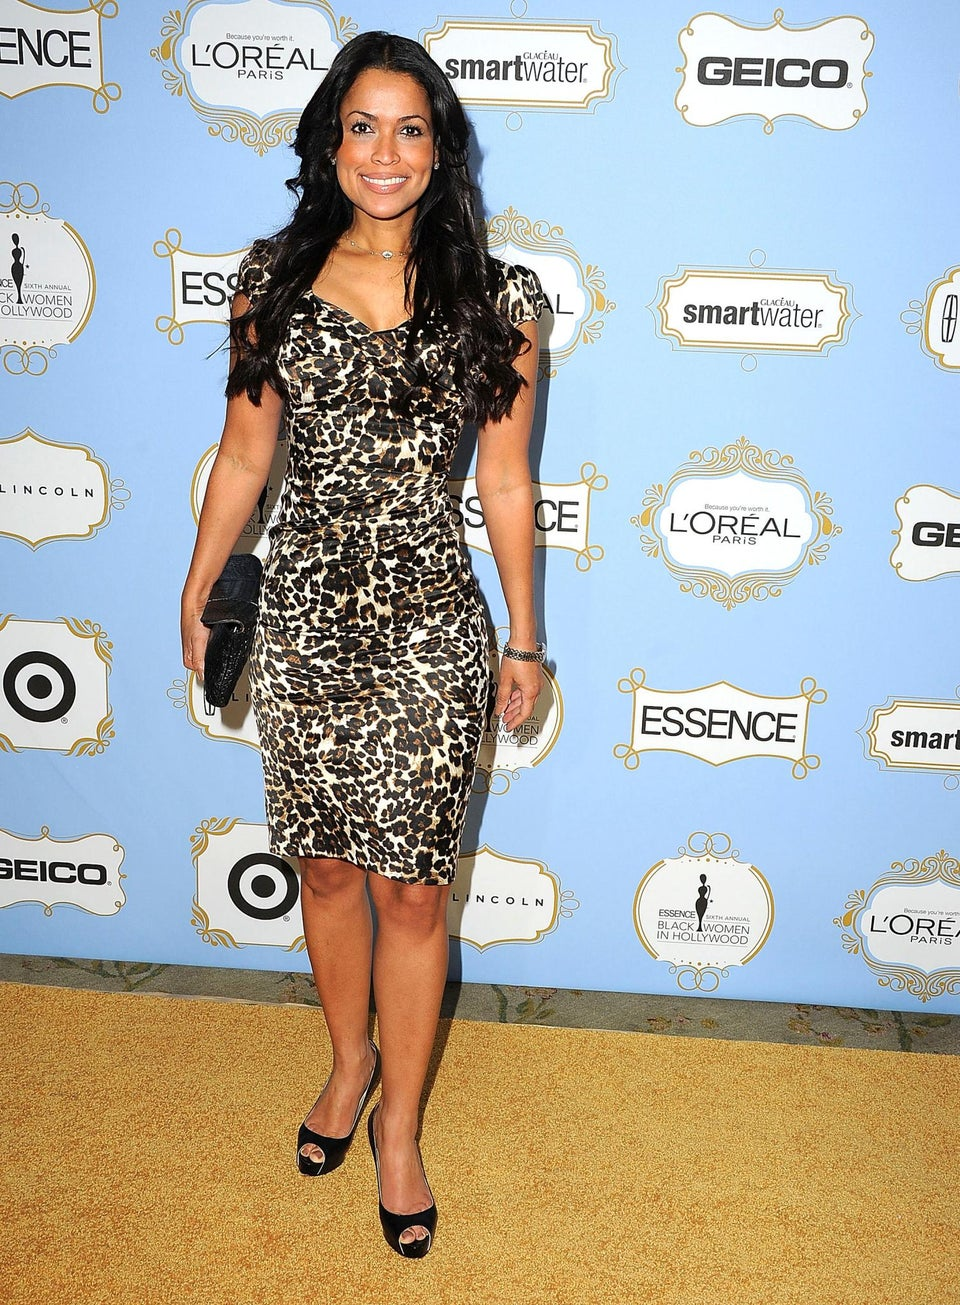 EXCLUSIVE: Tracey Edmonds Dishes on Her New YouTube Network and Hollywood Staying Power